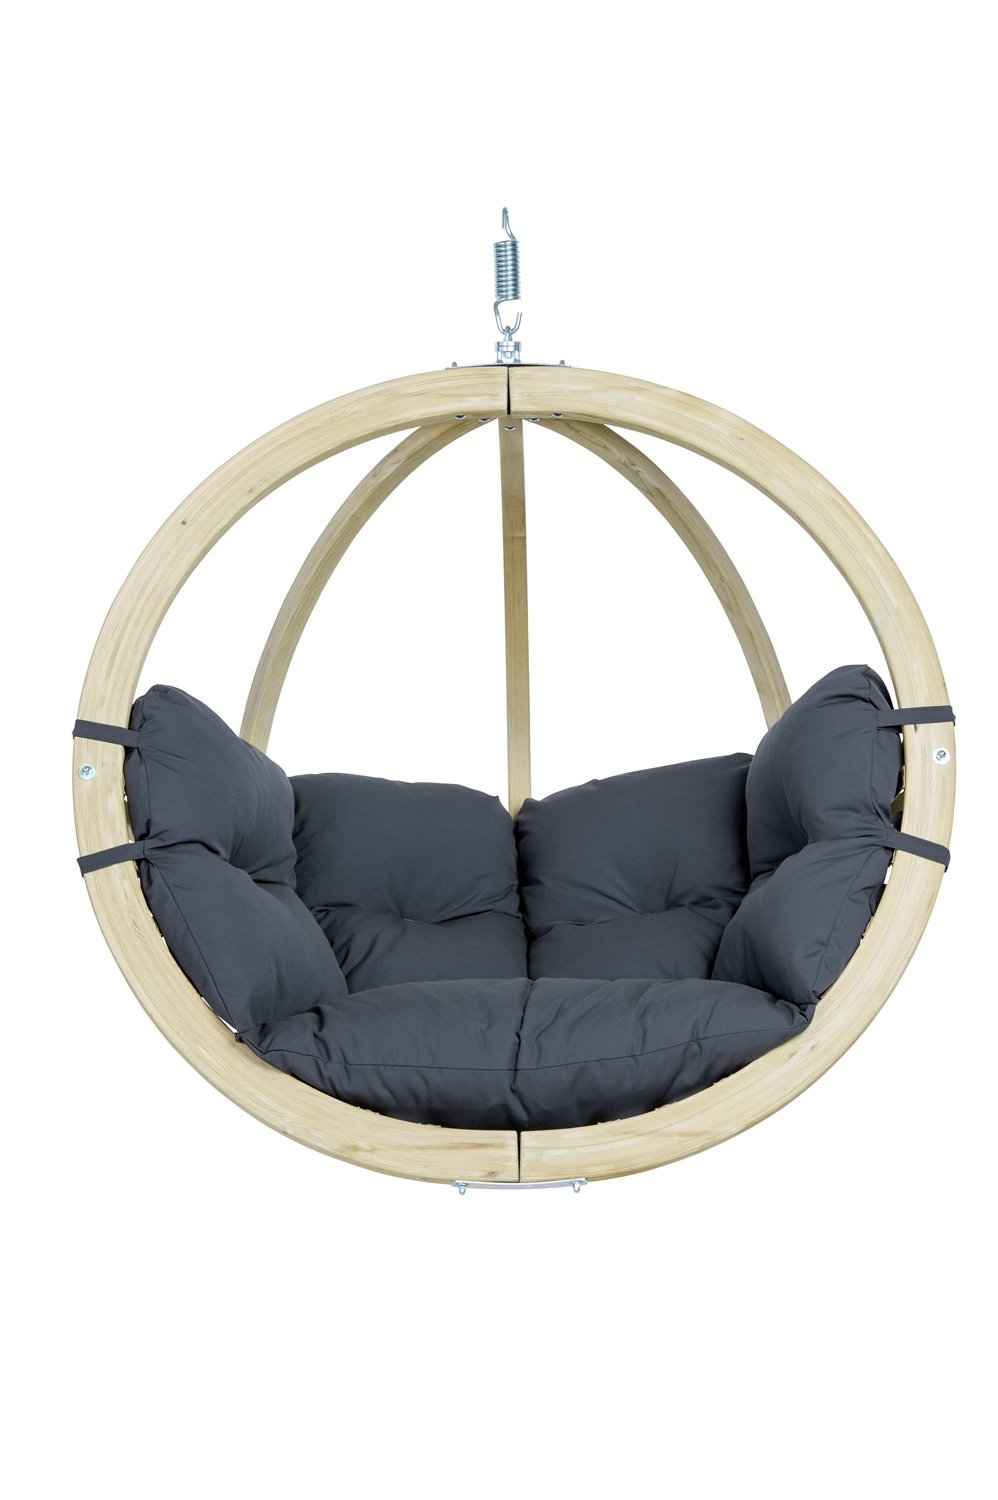 Hang Stoel Tuin.Hanging Chair For The Garden Anthracite Webshop Swimmingpools Be